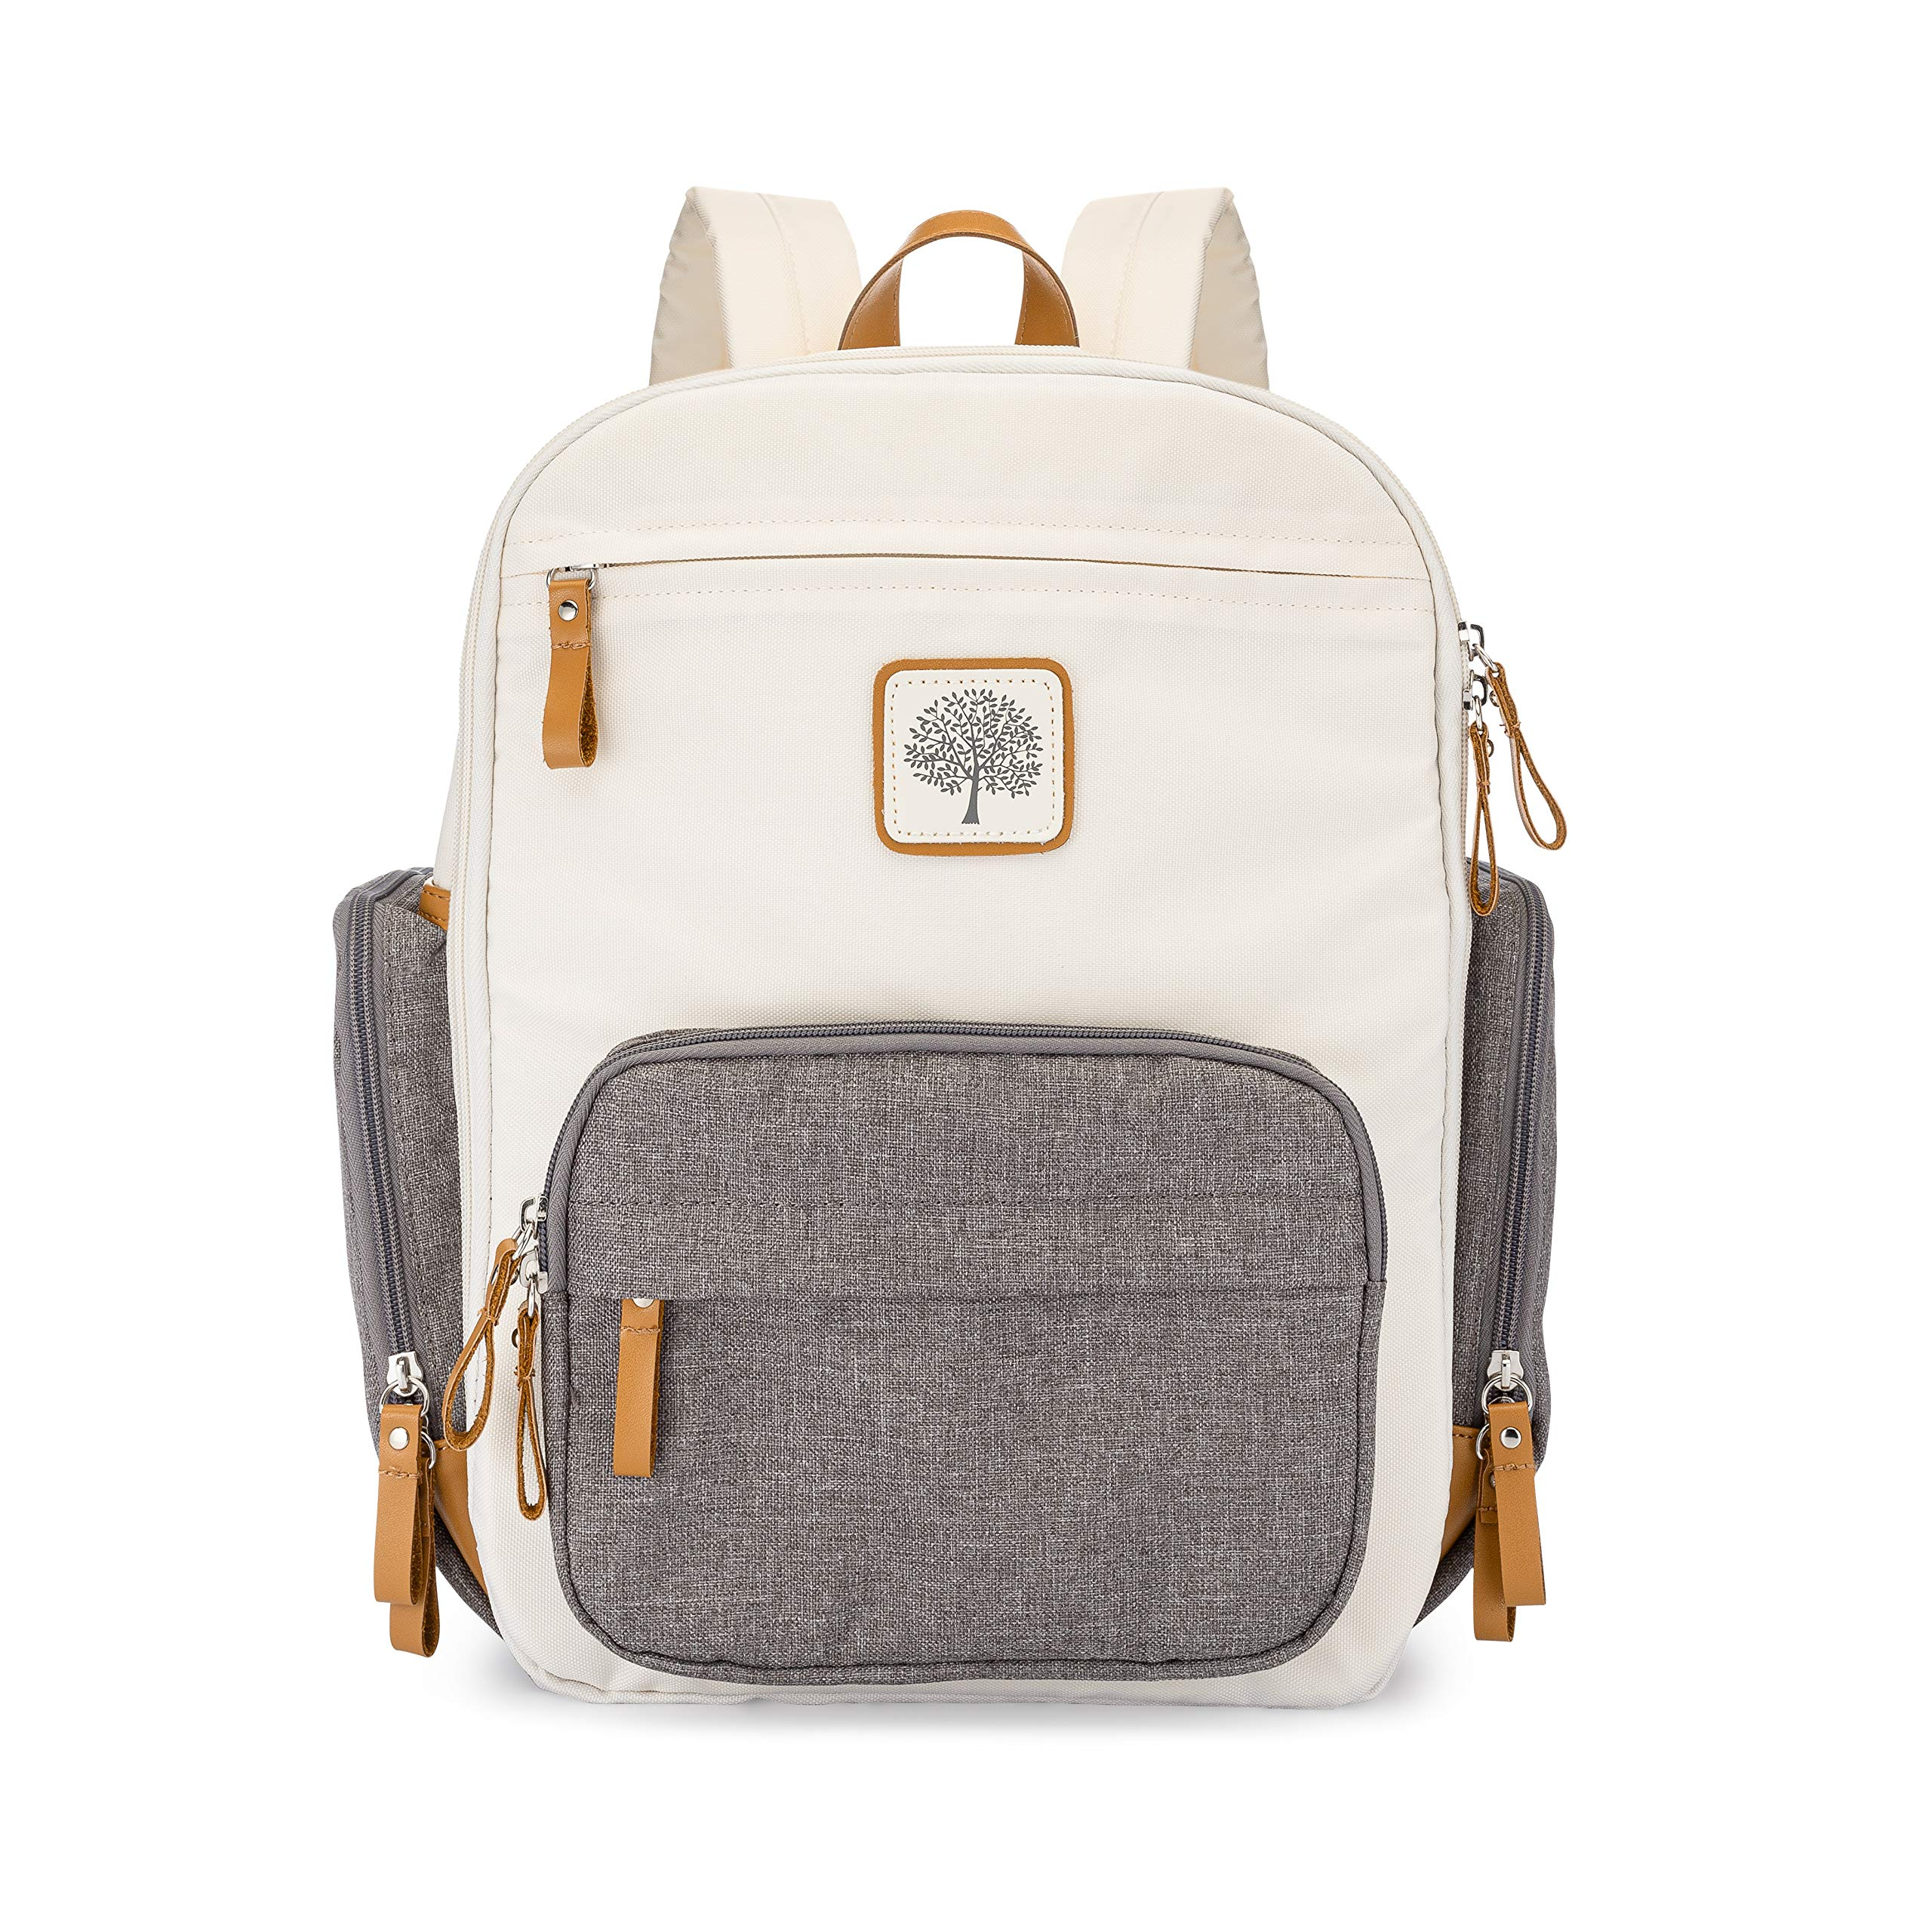 Parker Baby Diaper Backpack - Full Zip Diaper Bag with Insulated Pockets - Cream